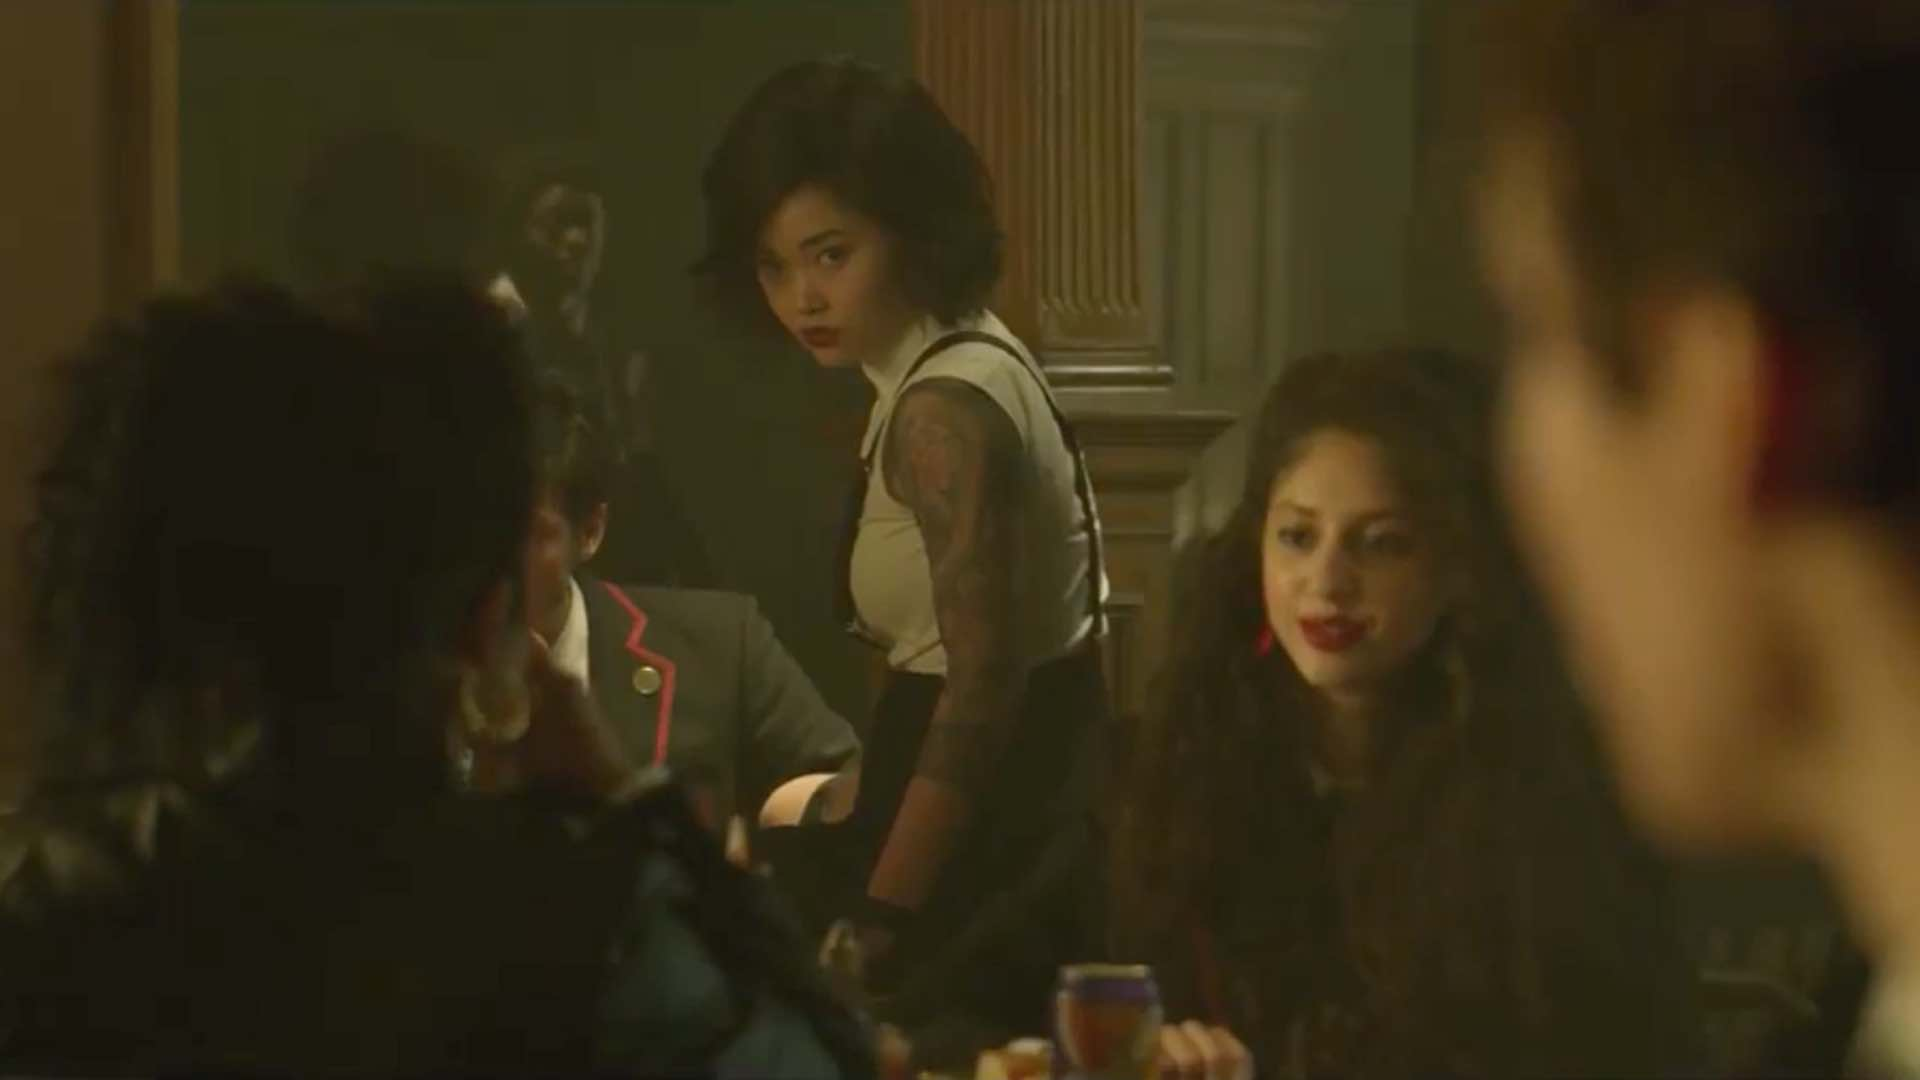 In 'Deadly Class', a young man unwittingly enrolls into King's Dominion, an elite high school for international criminals and assassins.